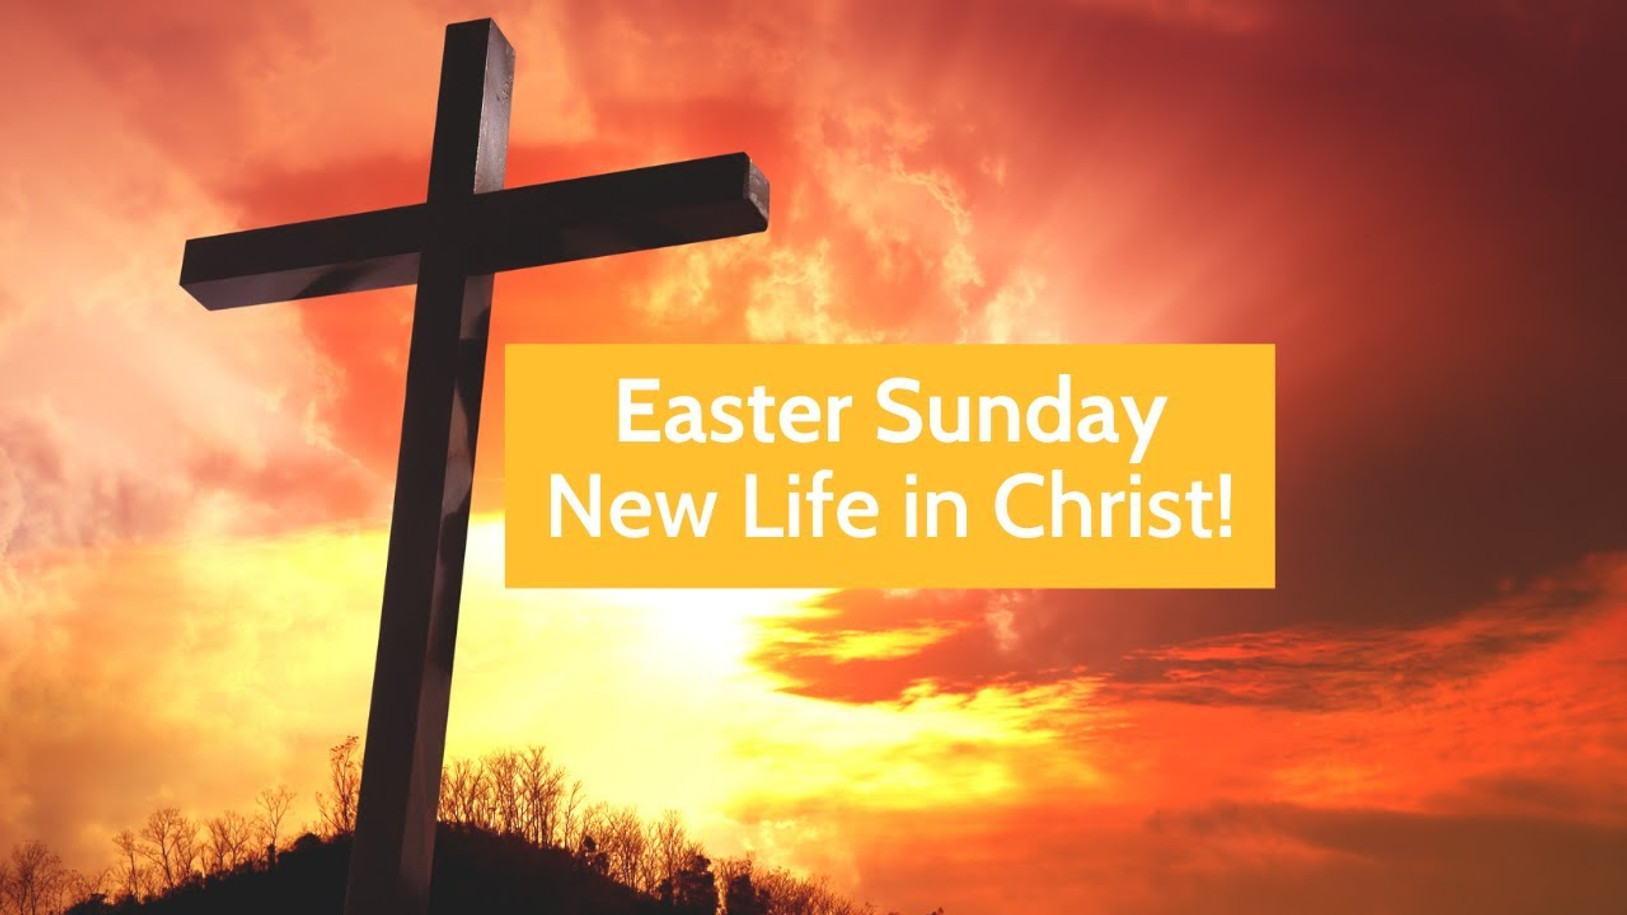 Easter Sunday! New Life in Christ